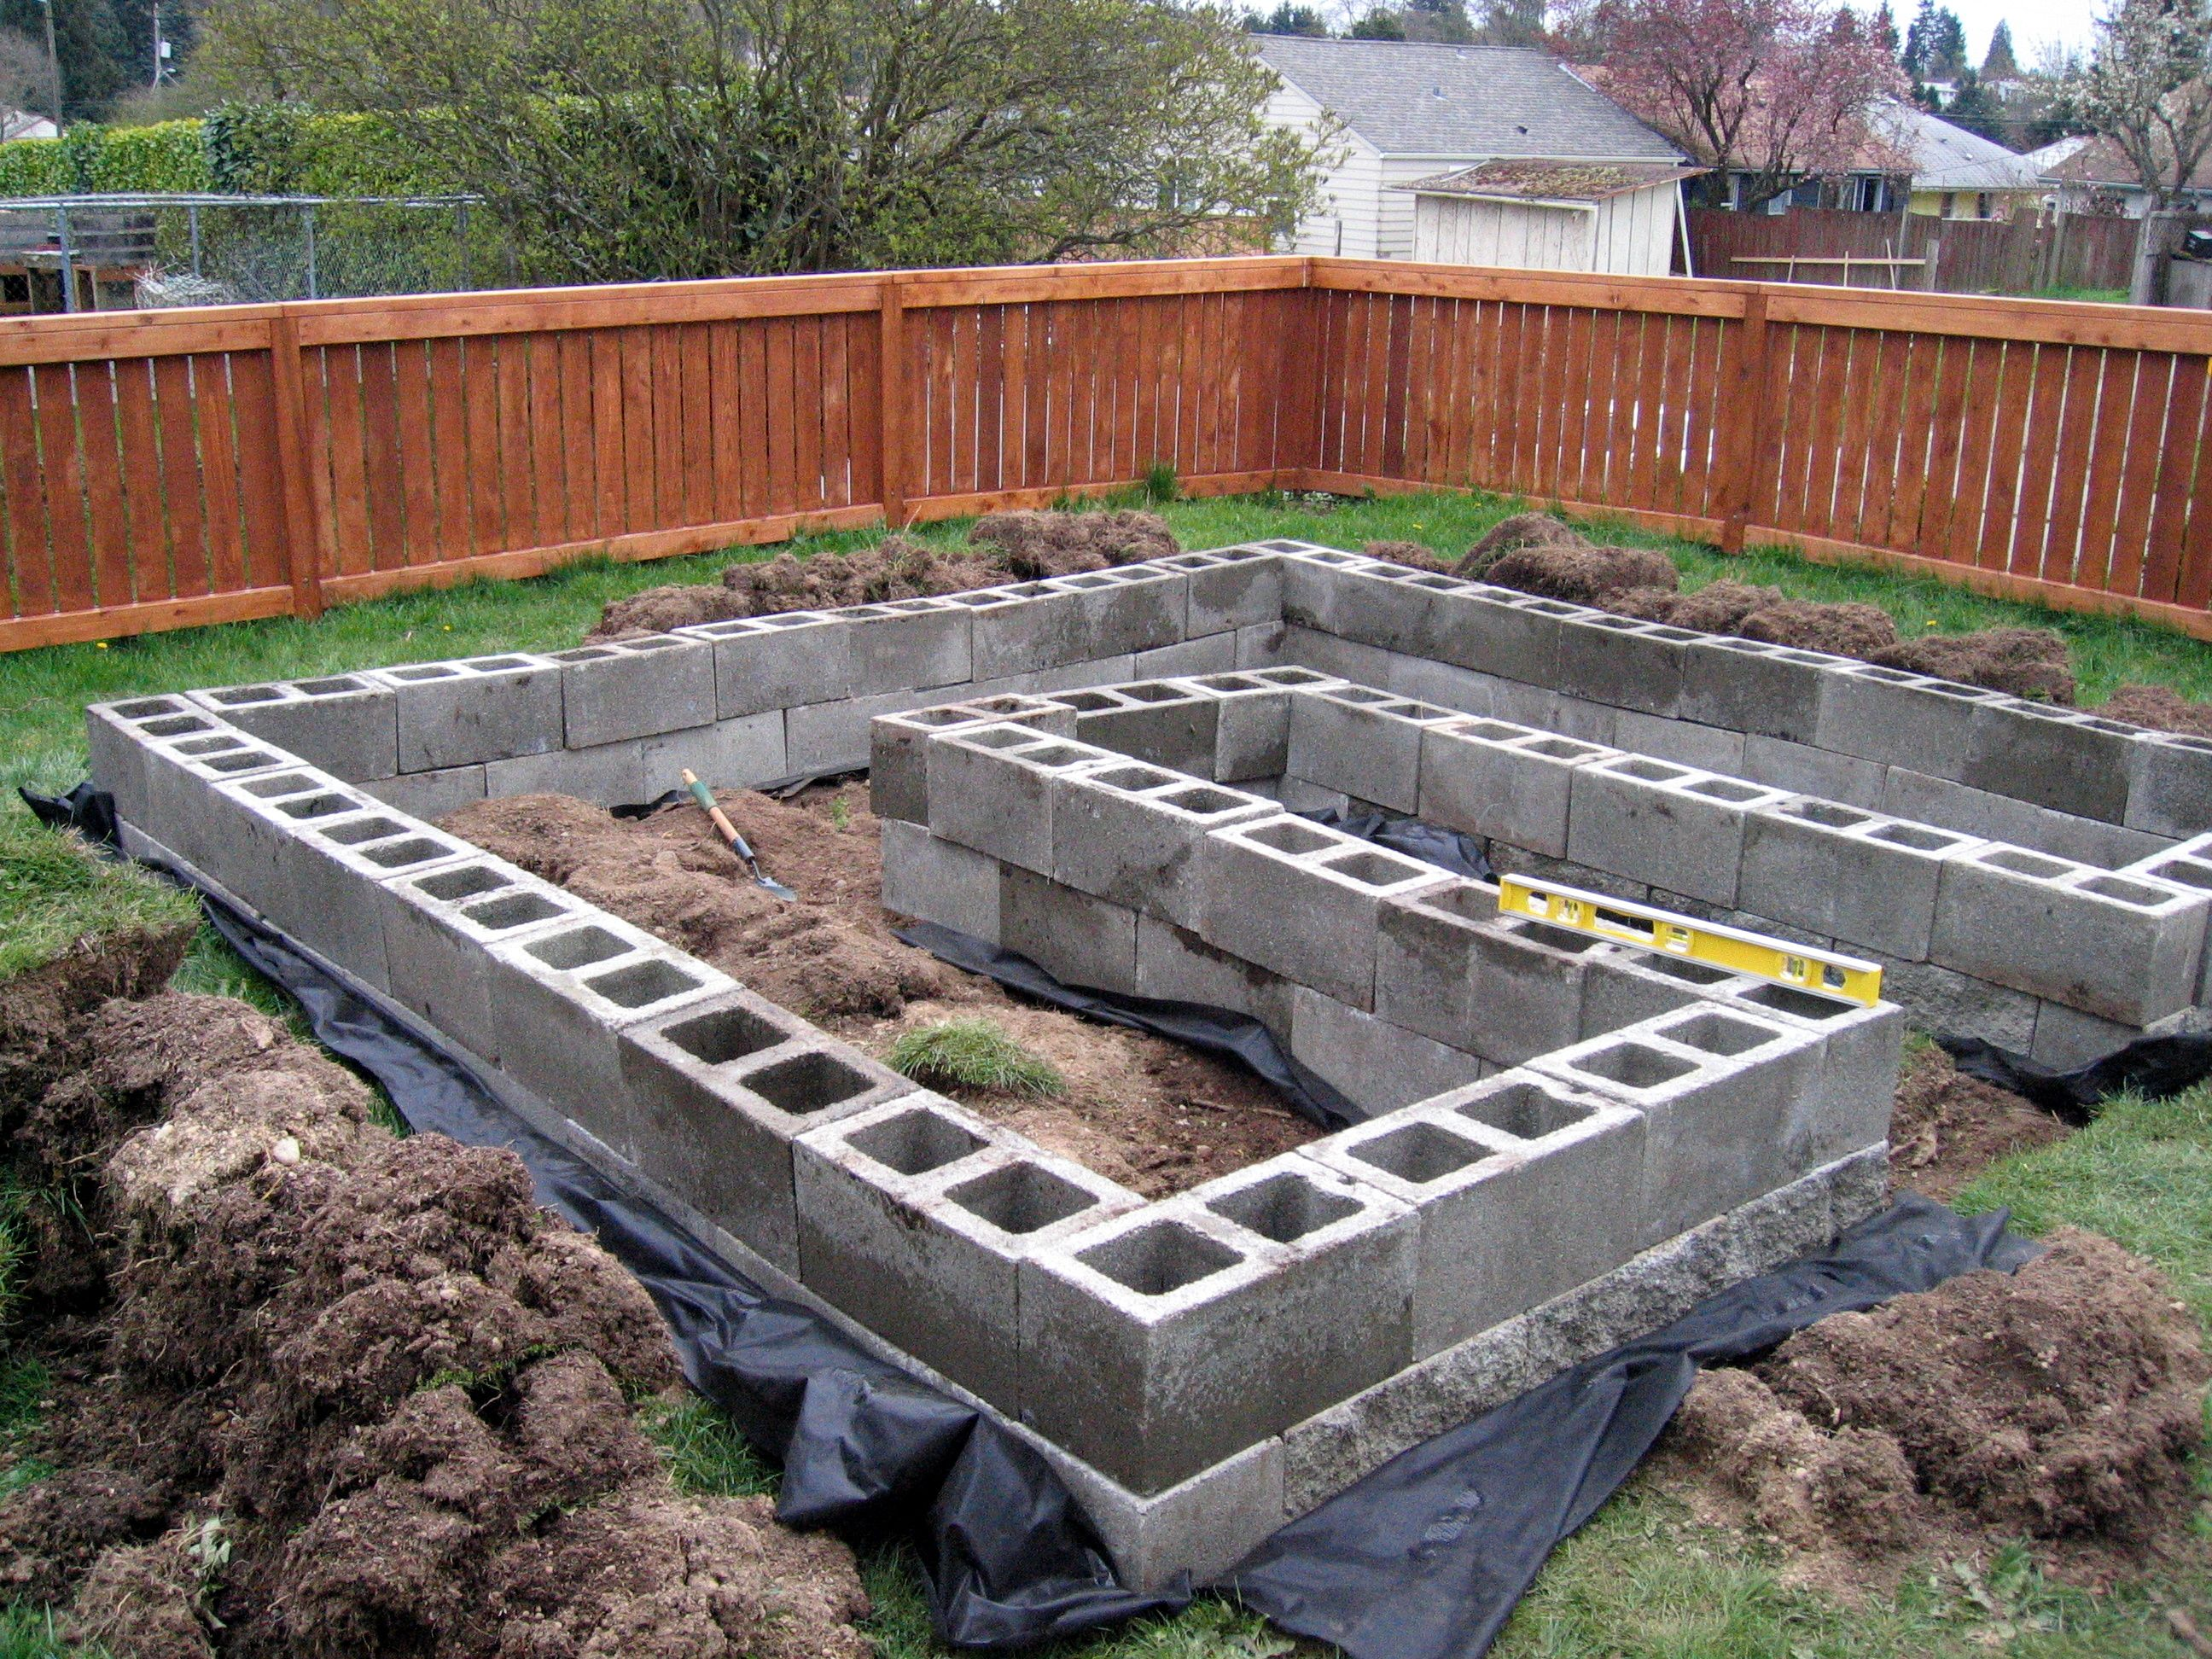 Cement block garden. I like the